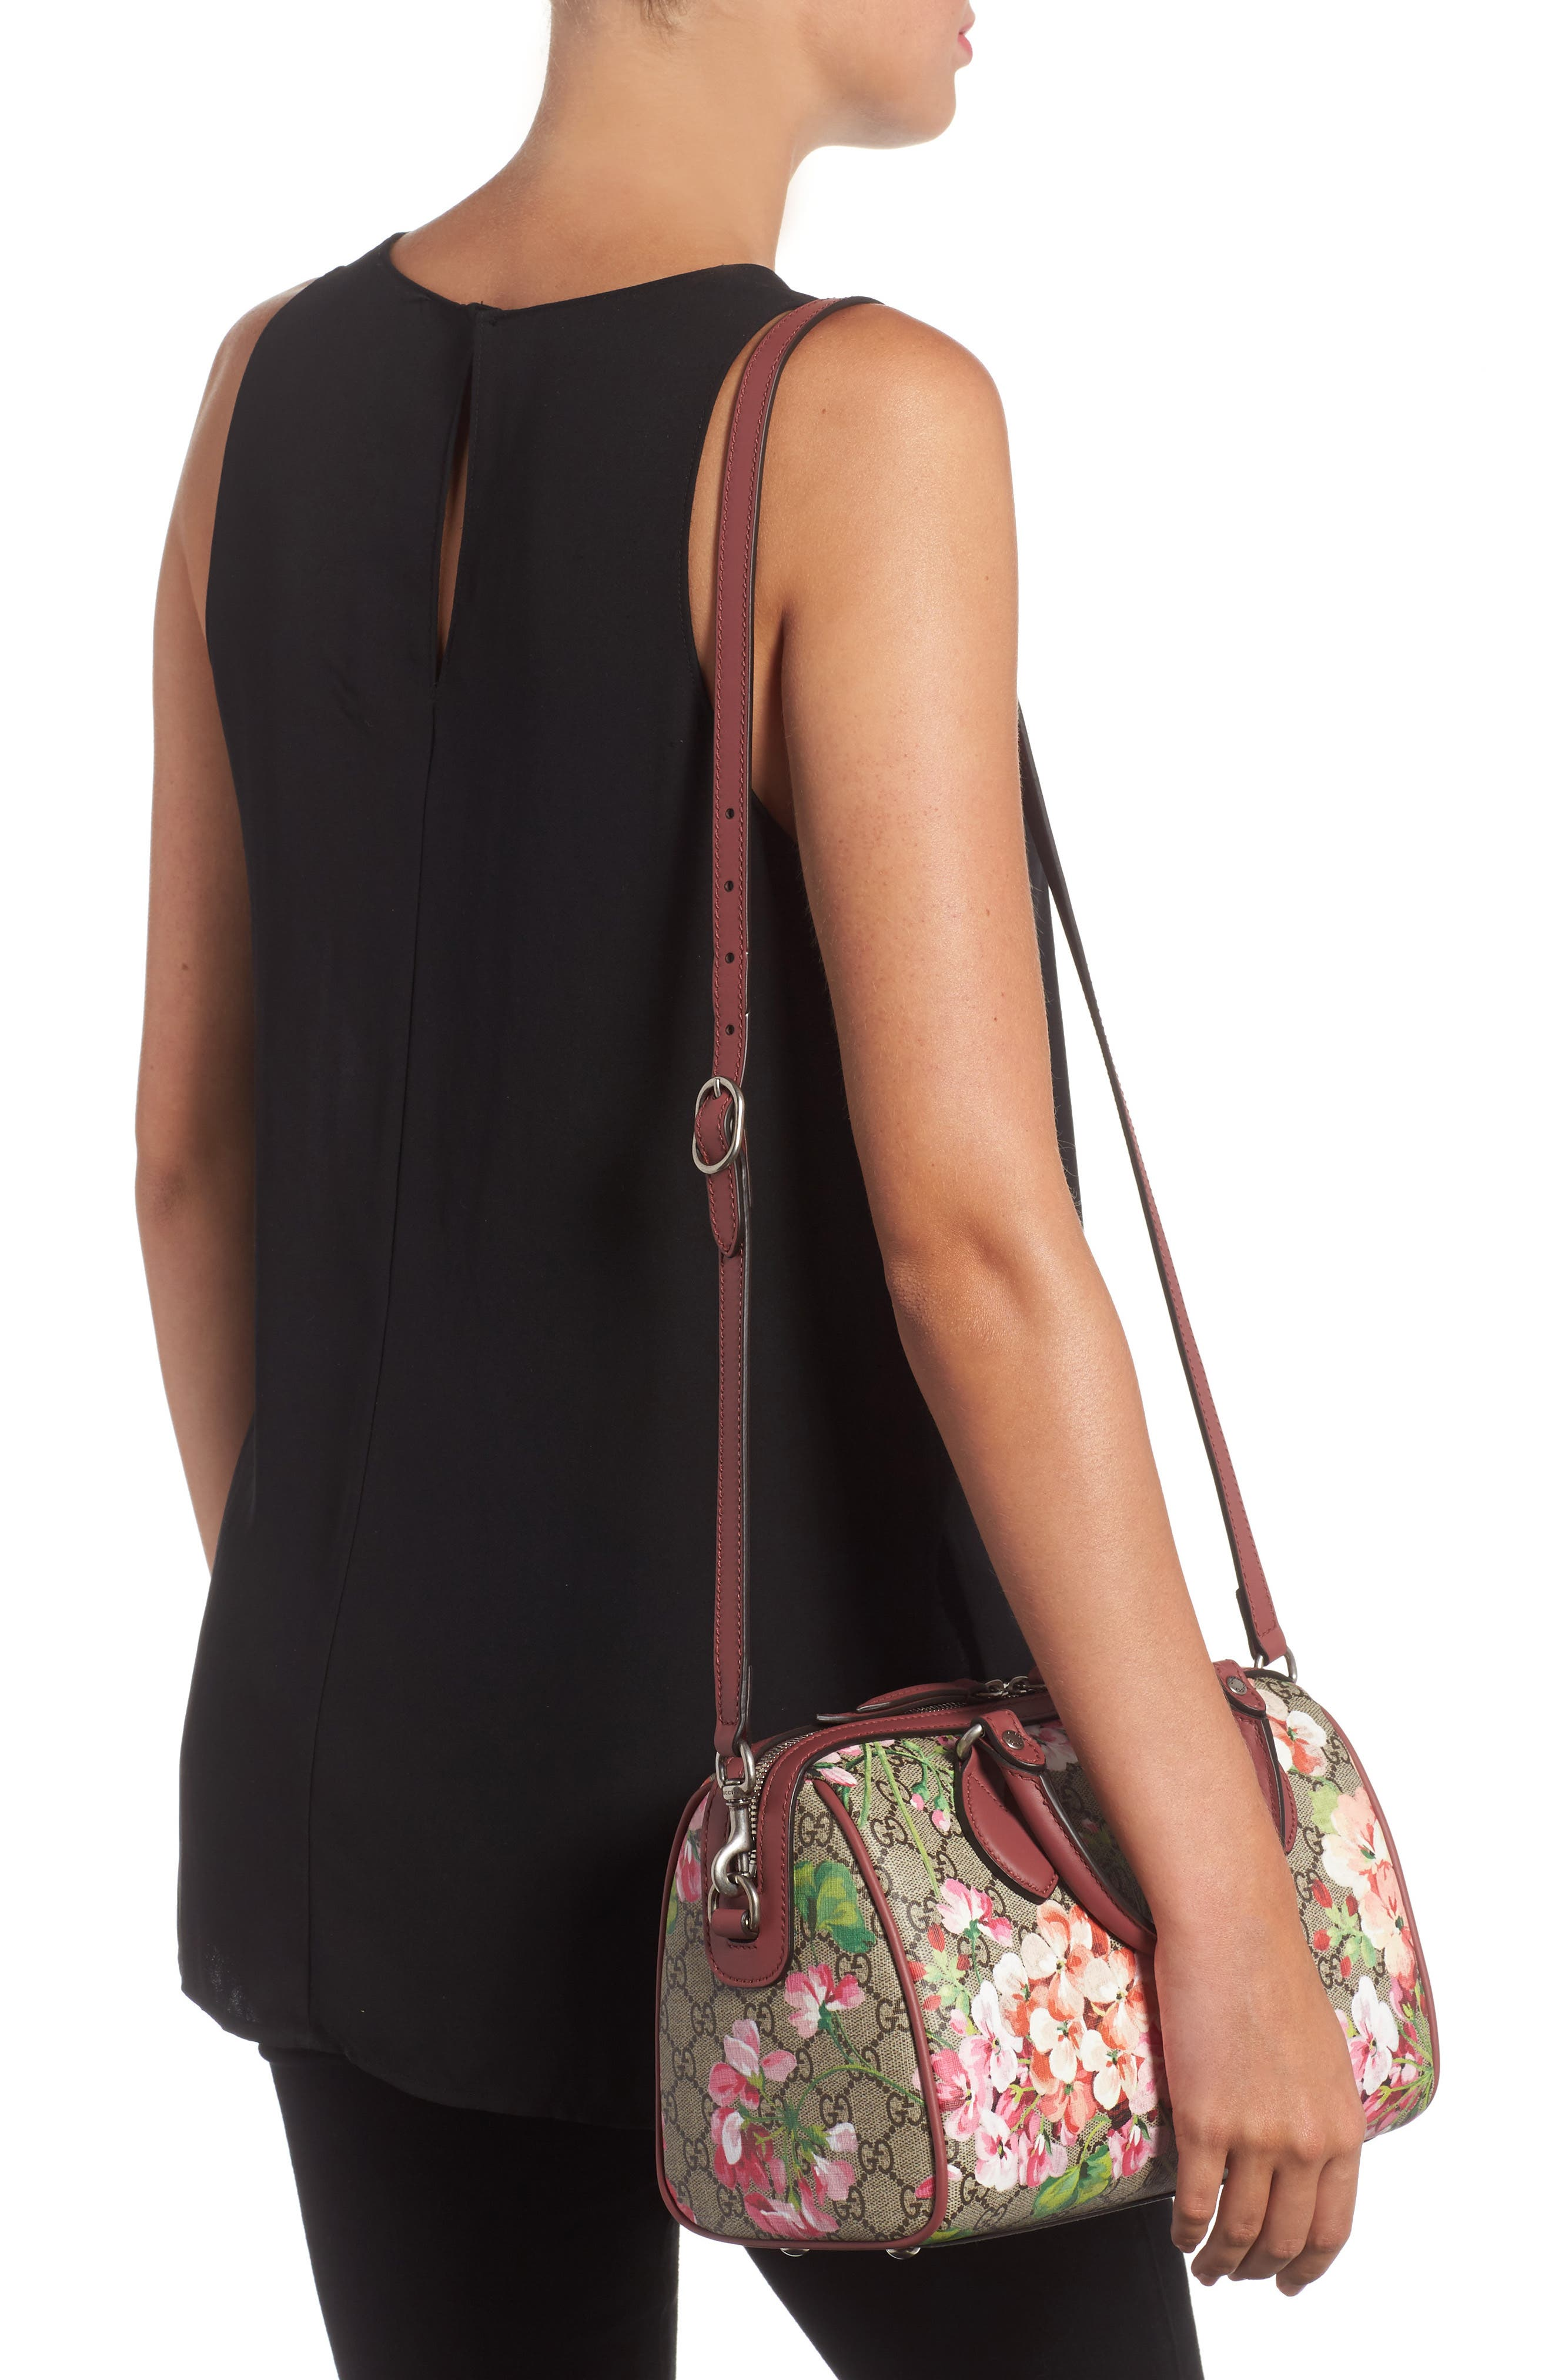 Small Blooms Top Handle GG Supreme Canvas Bag,                             Alternate thumbnail 2, color,                             Multi/Dry Rose